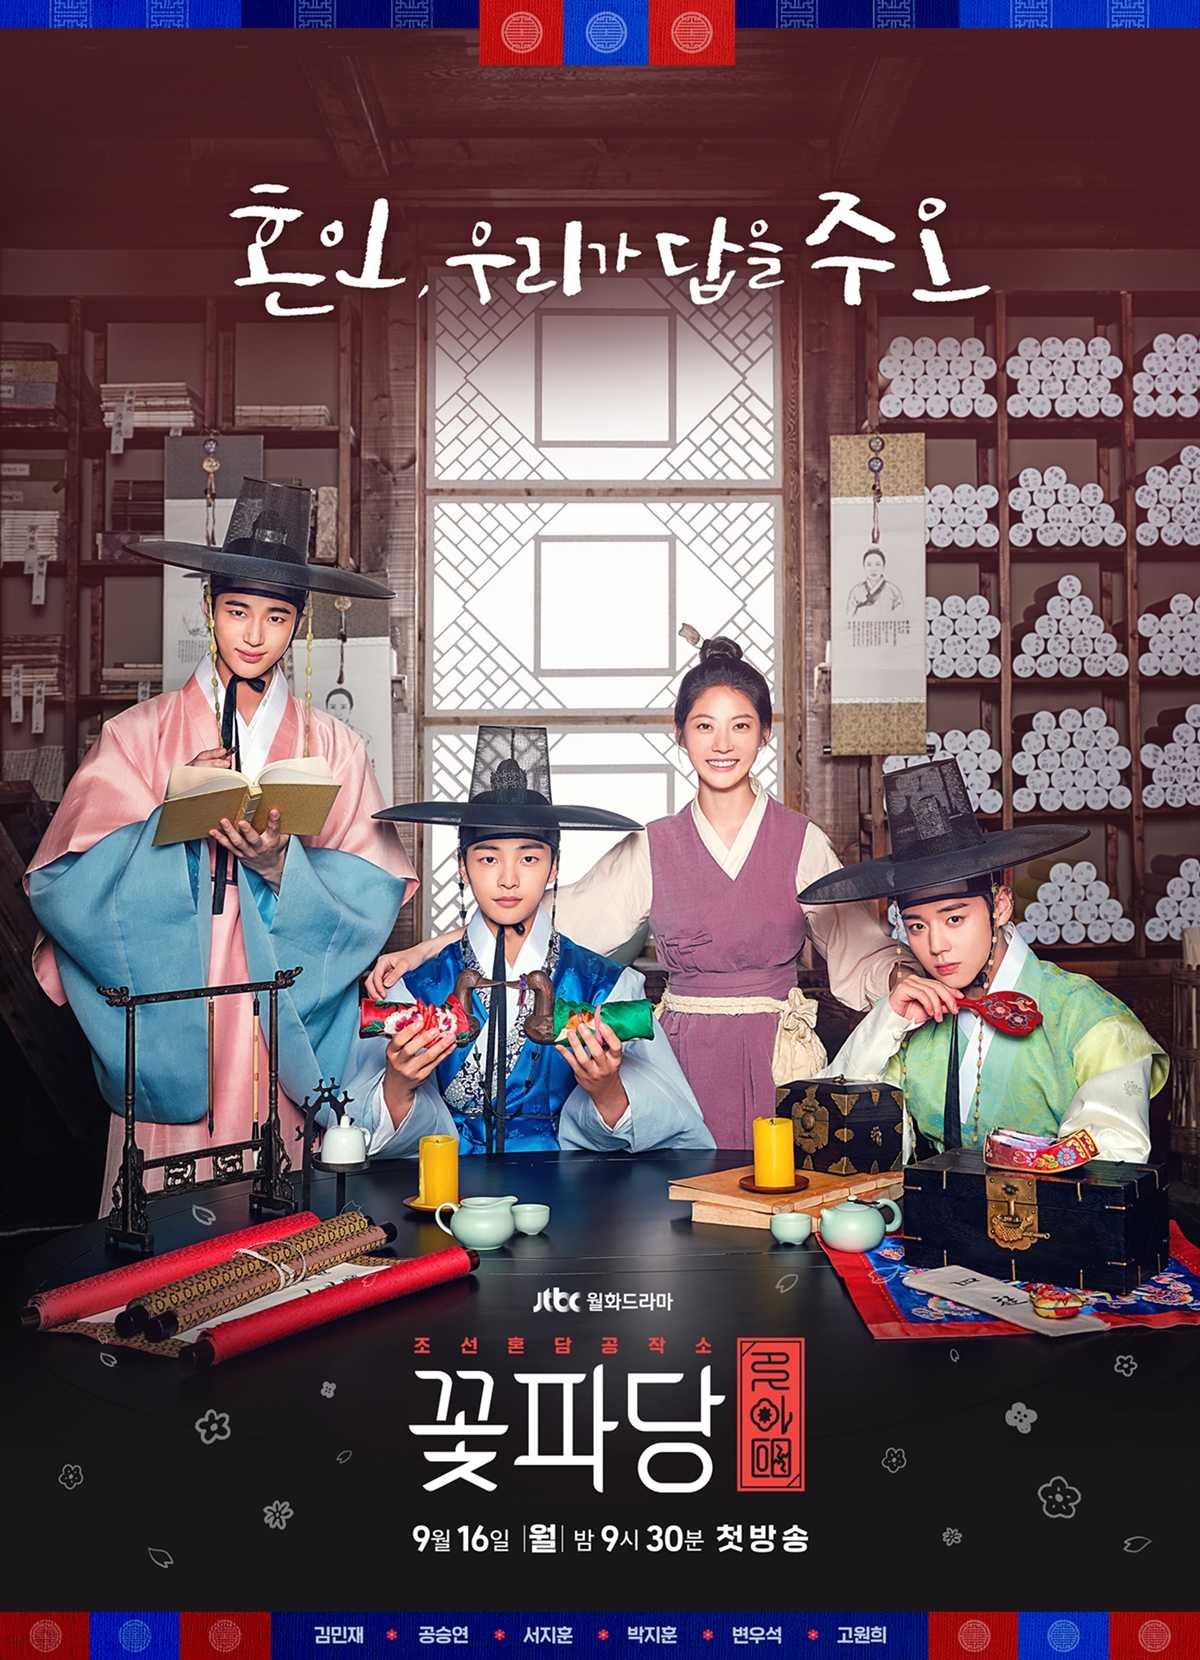 flower-crew-joseon-marriage-agency-ep-1-16-ซับไทย